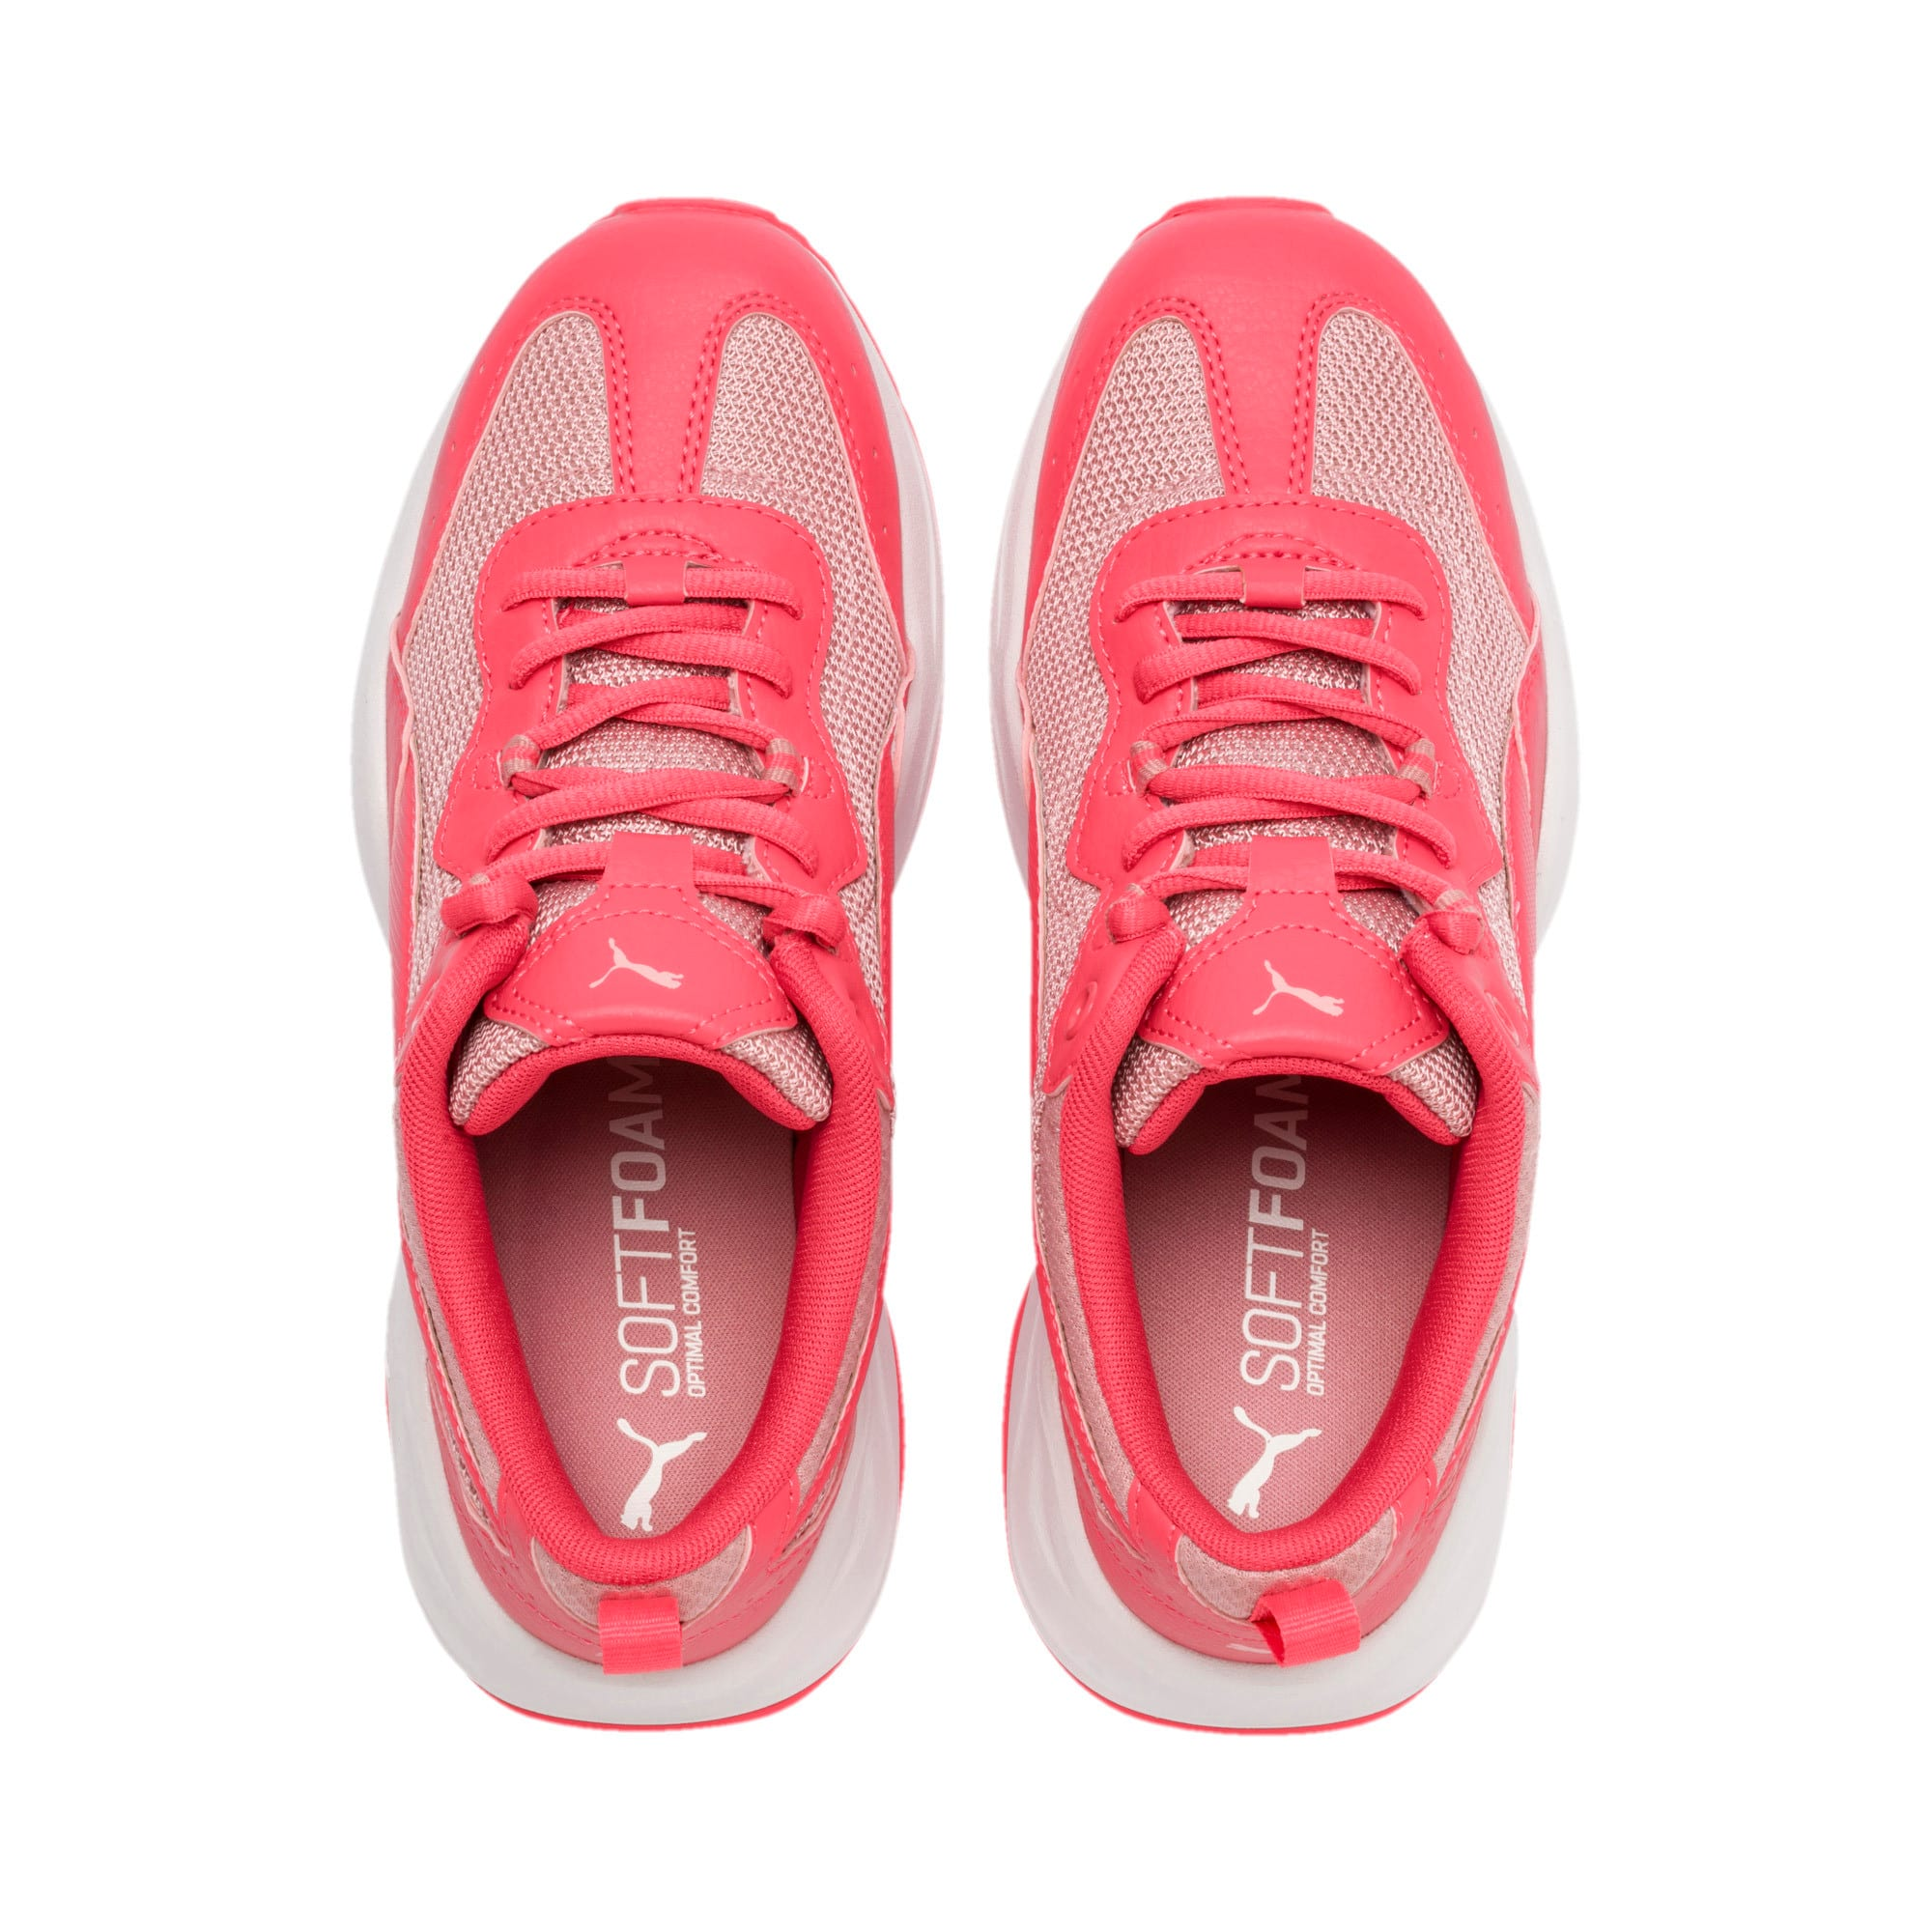 Thumbnail 6 of Cilia Youth Trainers, Calypso Coral-B Rose-White, medium-IND